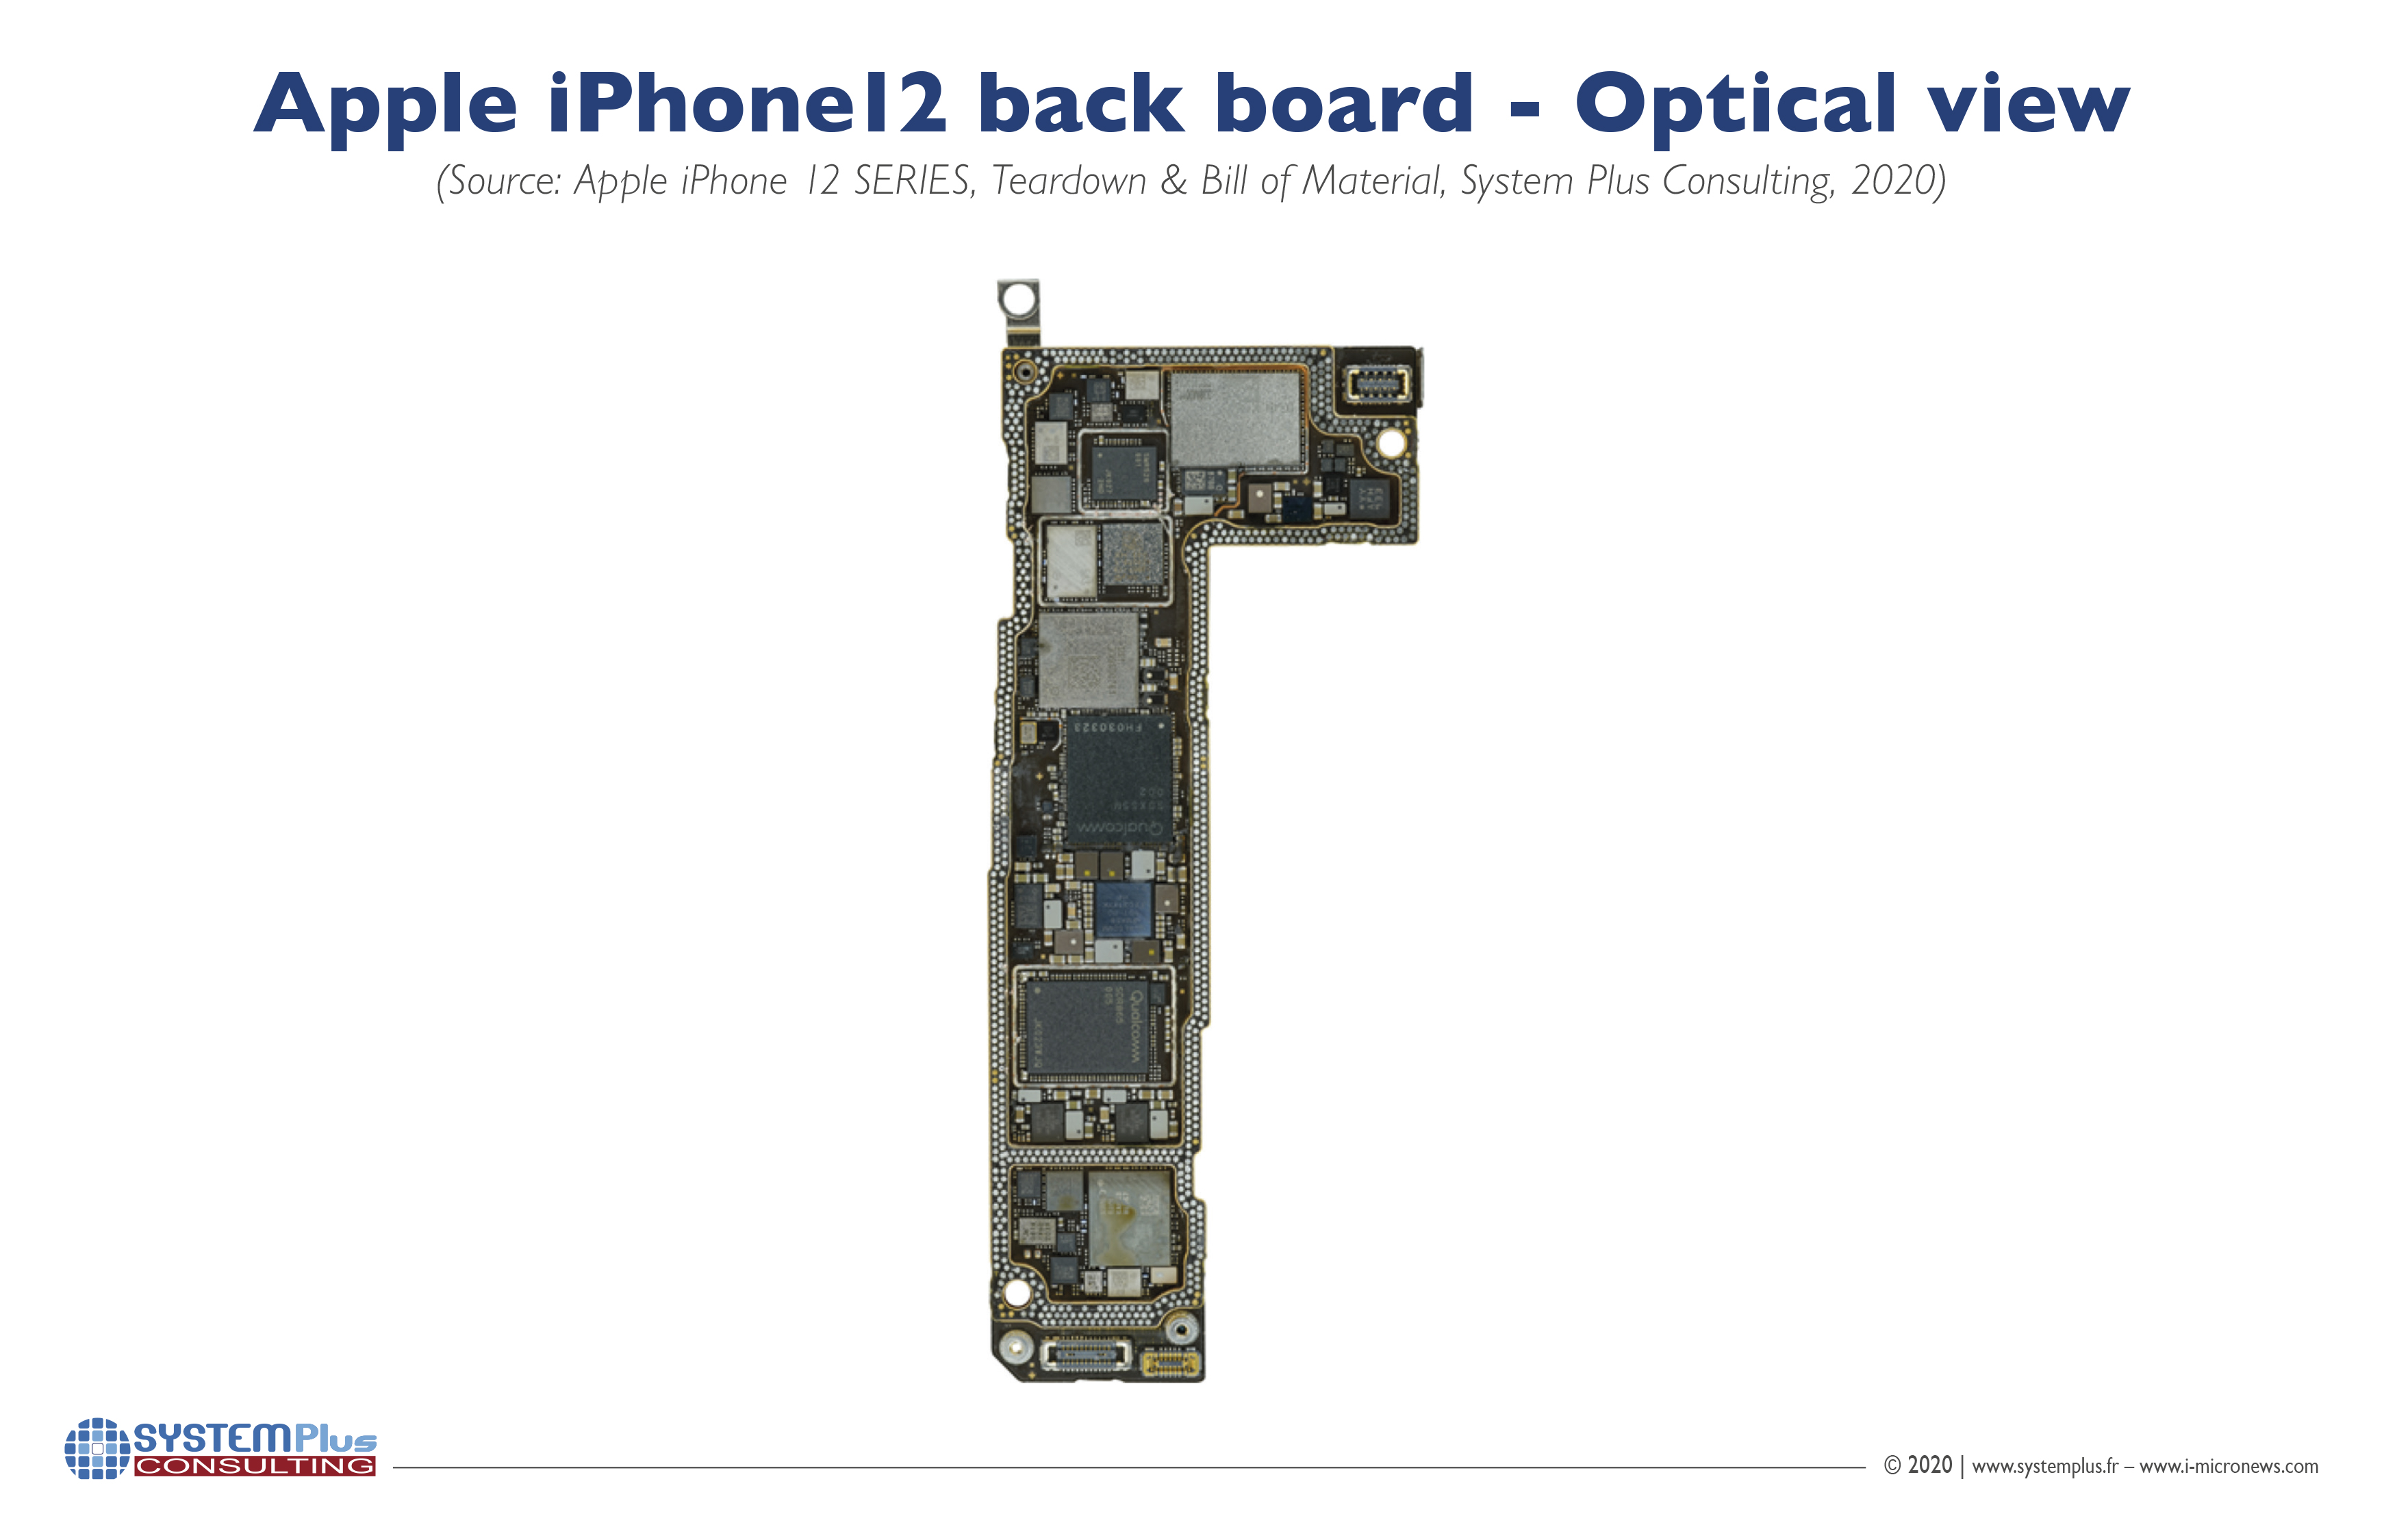 IILUS_APPLE_IPHONE12_Backboard_OpticalView_SYSTEMPLUSCONSULTING_Nov2020